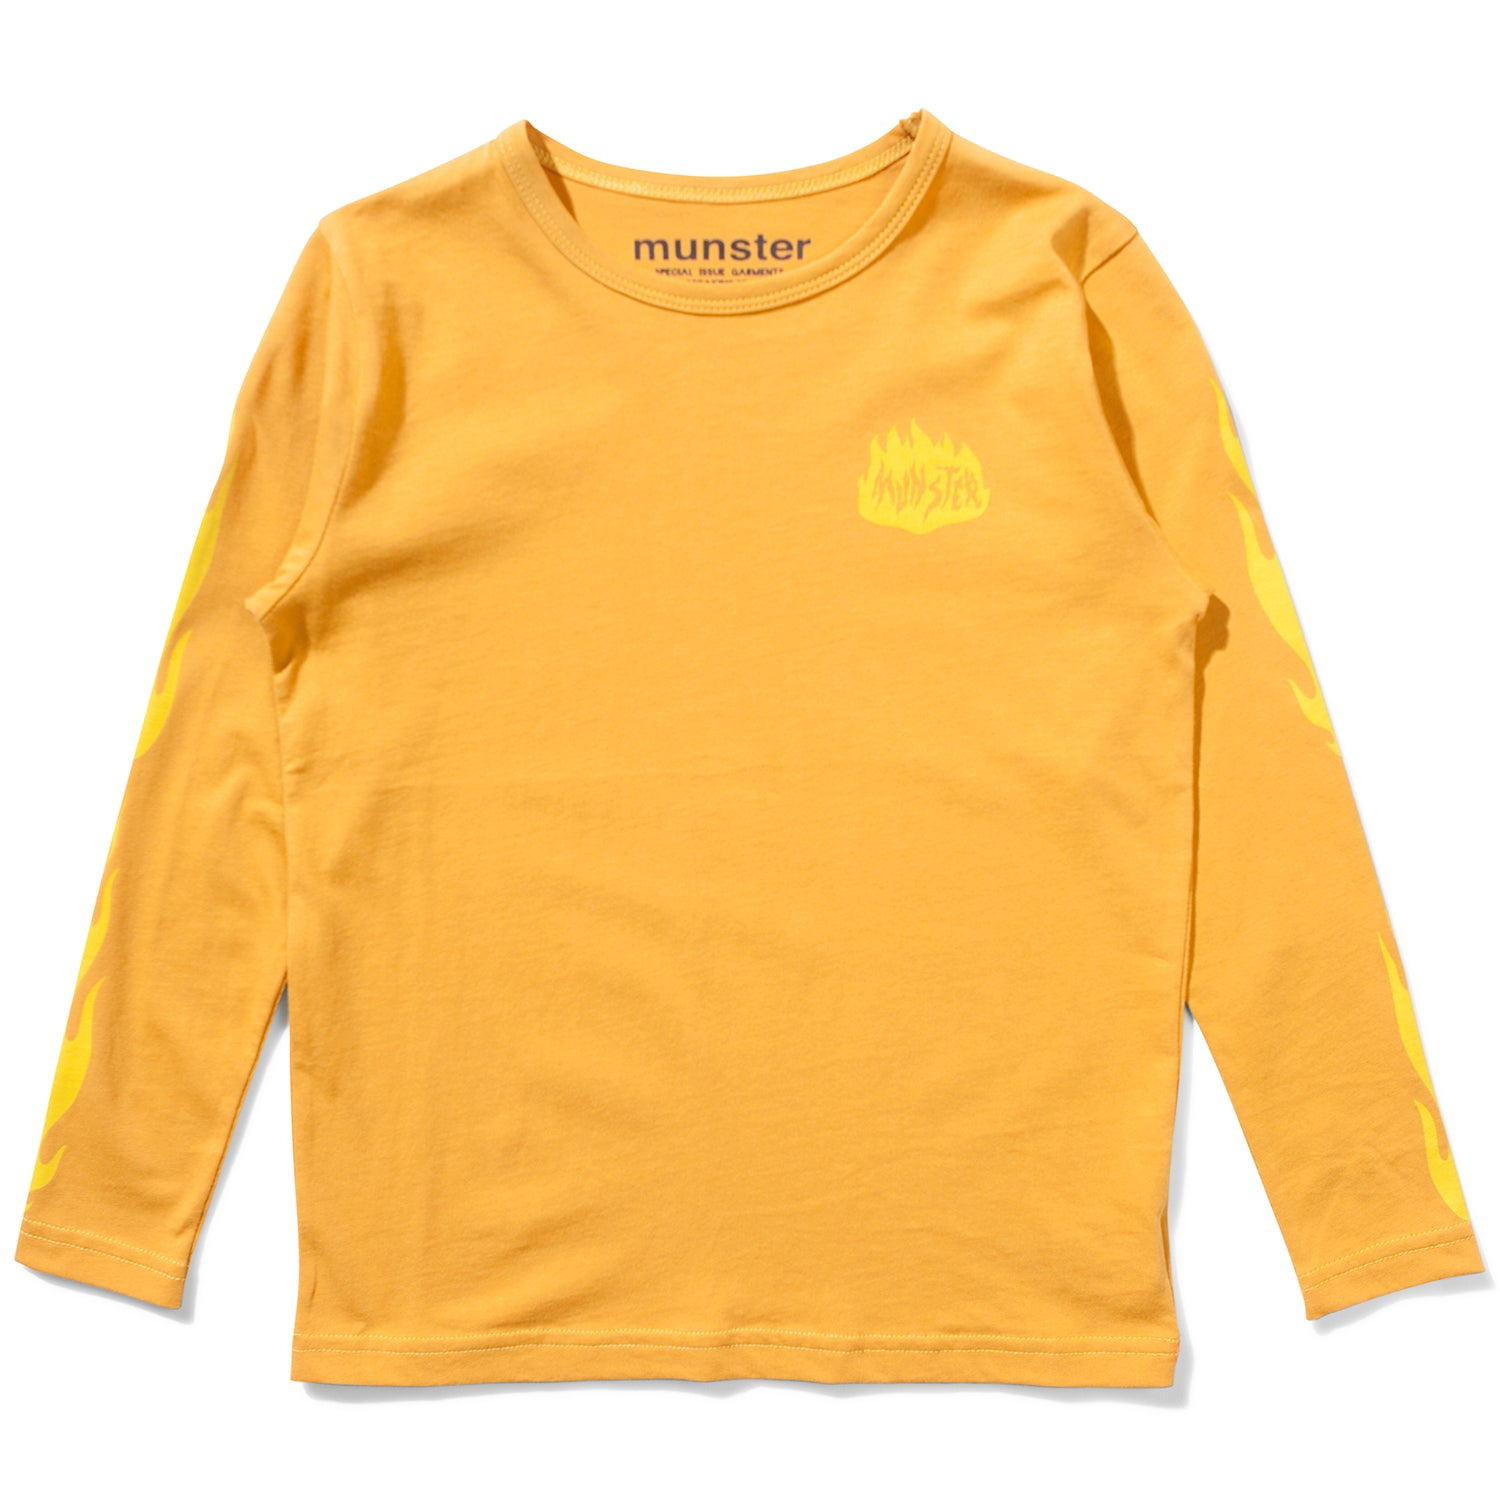 yoya, kids, boys, munsterkids, summer, casual, lightweight, long sleeved, graphic t-shirt